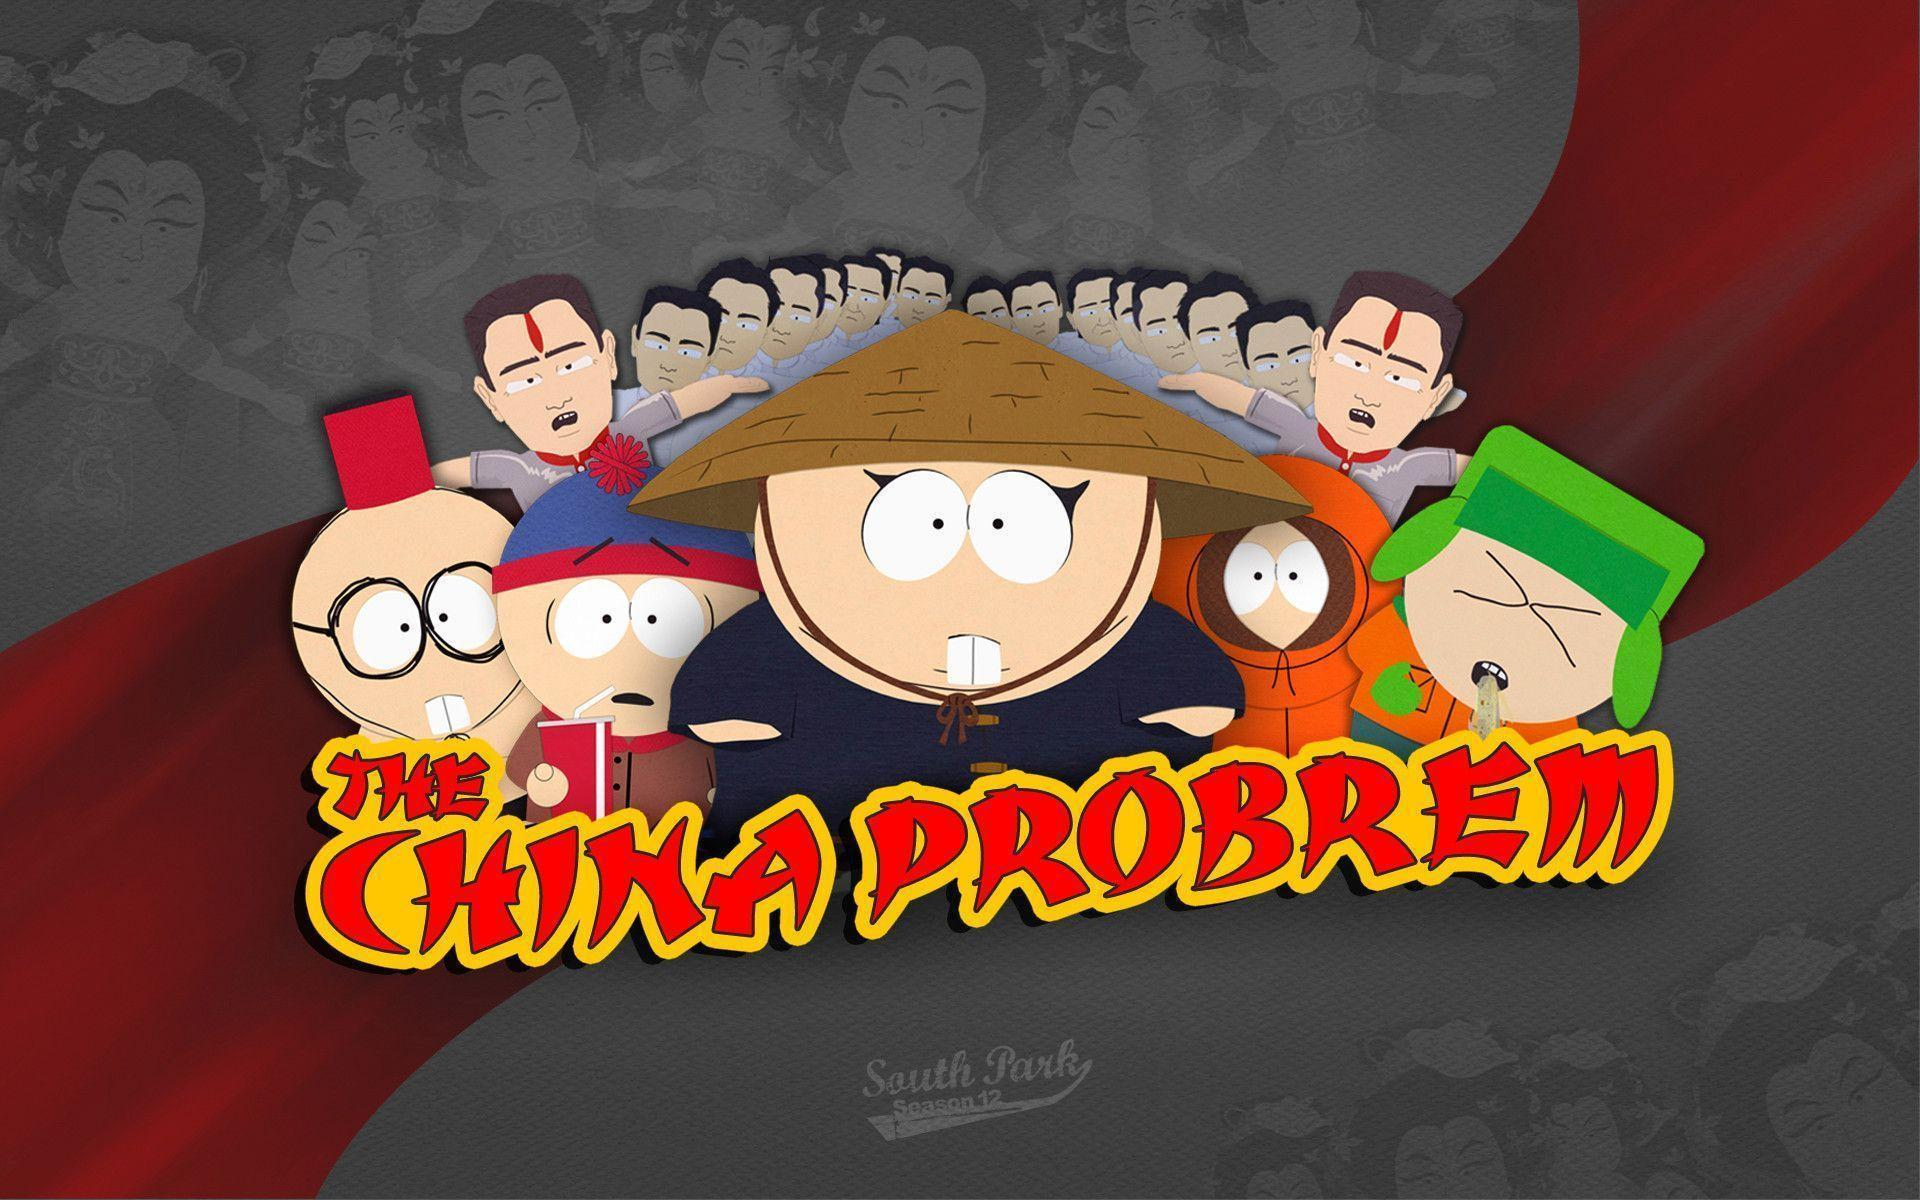 Funny South Park Wallpapers Images & Pictures - Becuo